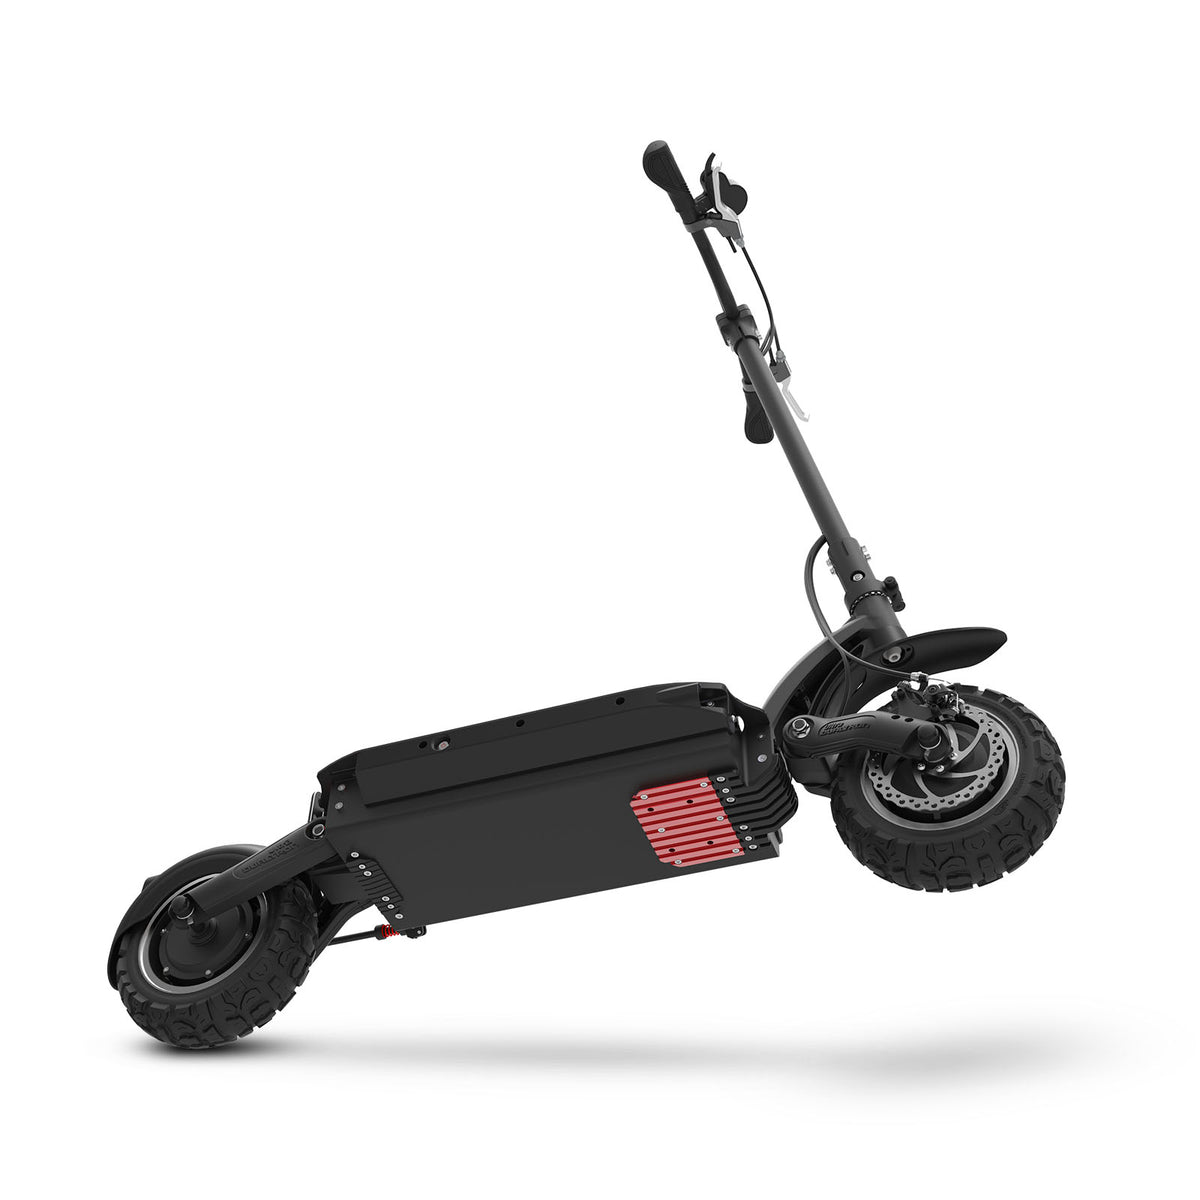 Dualtron Ultra Electric Scooter bottom detail